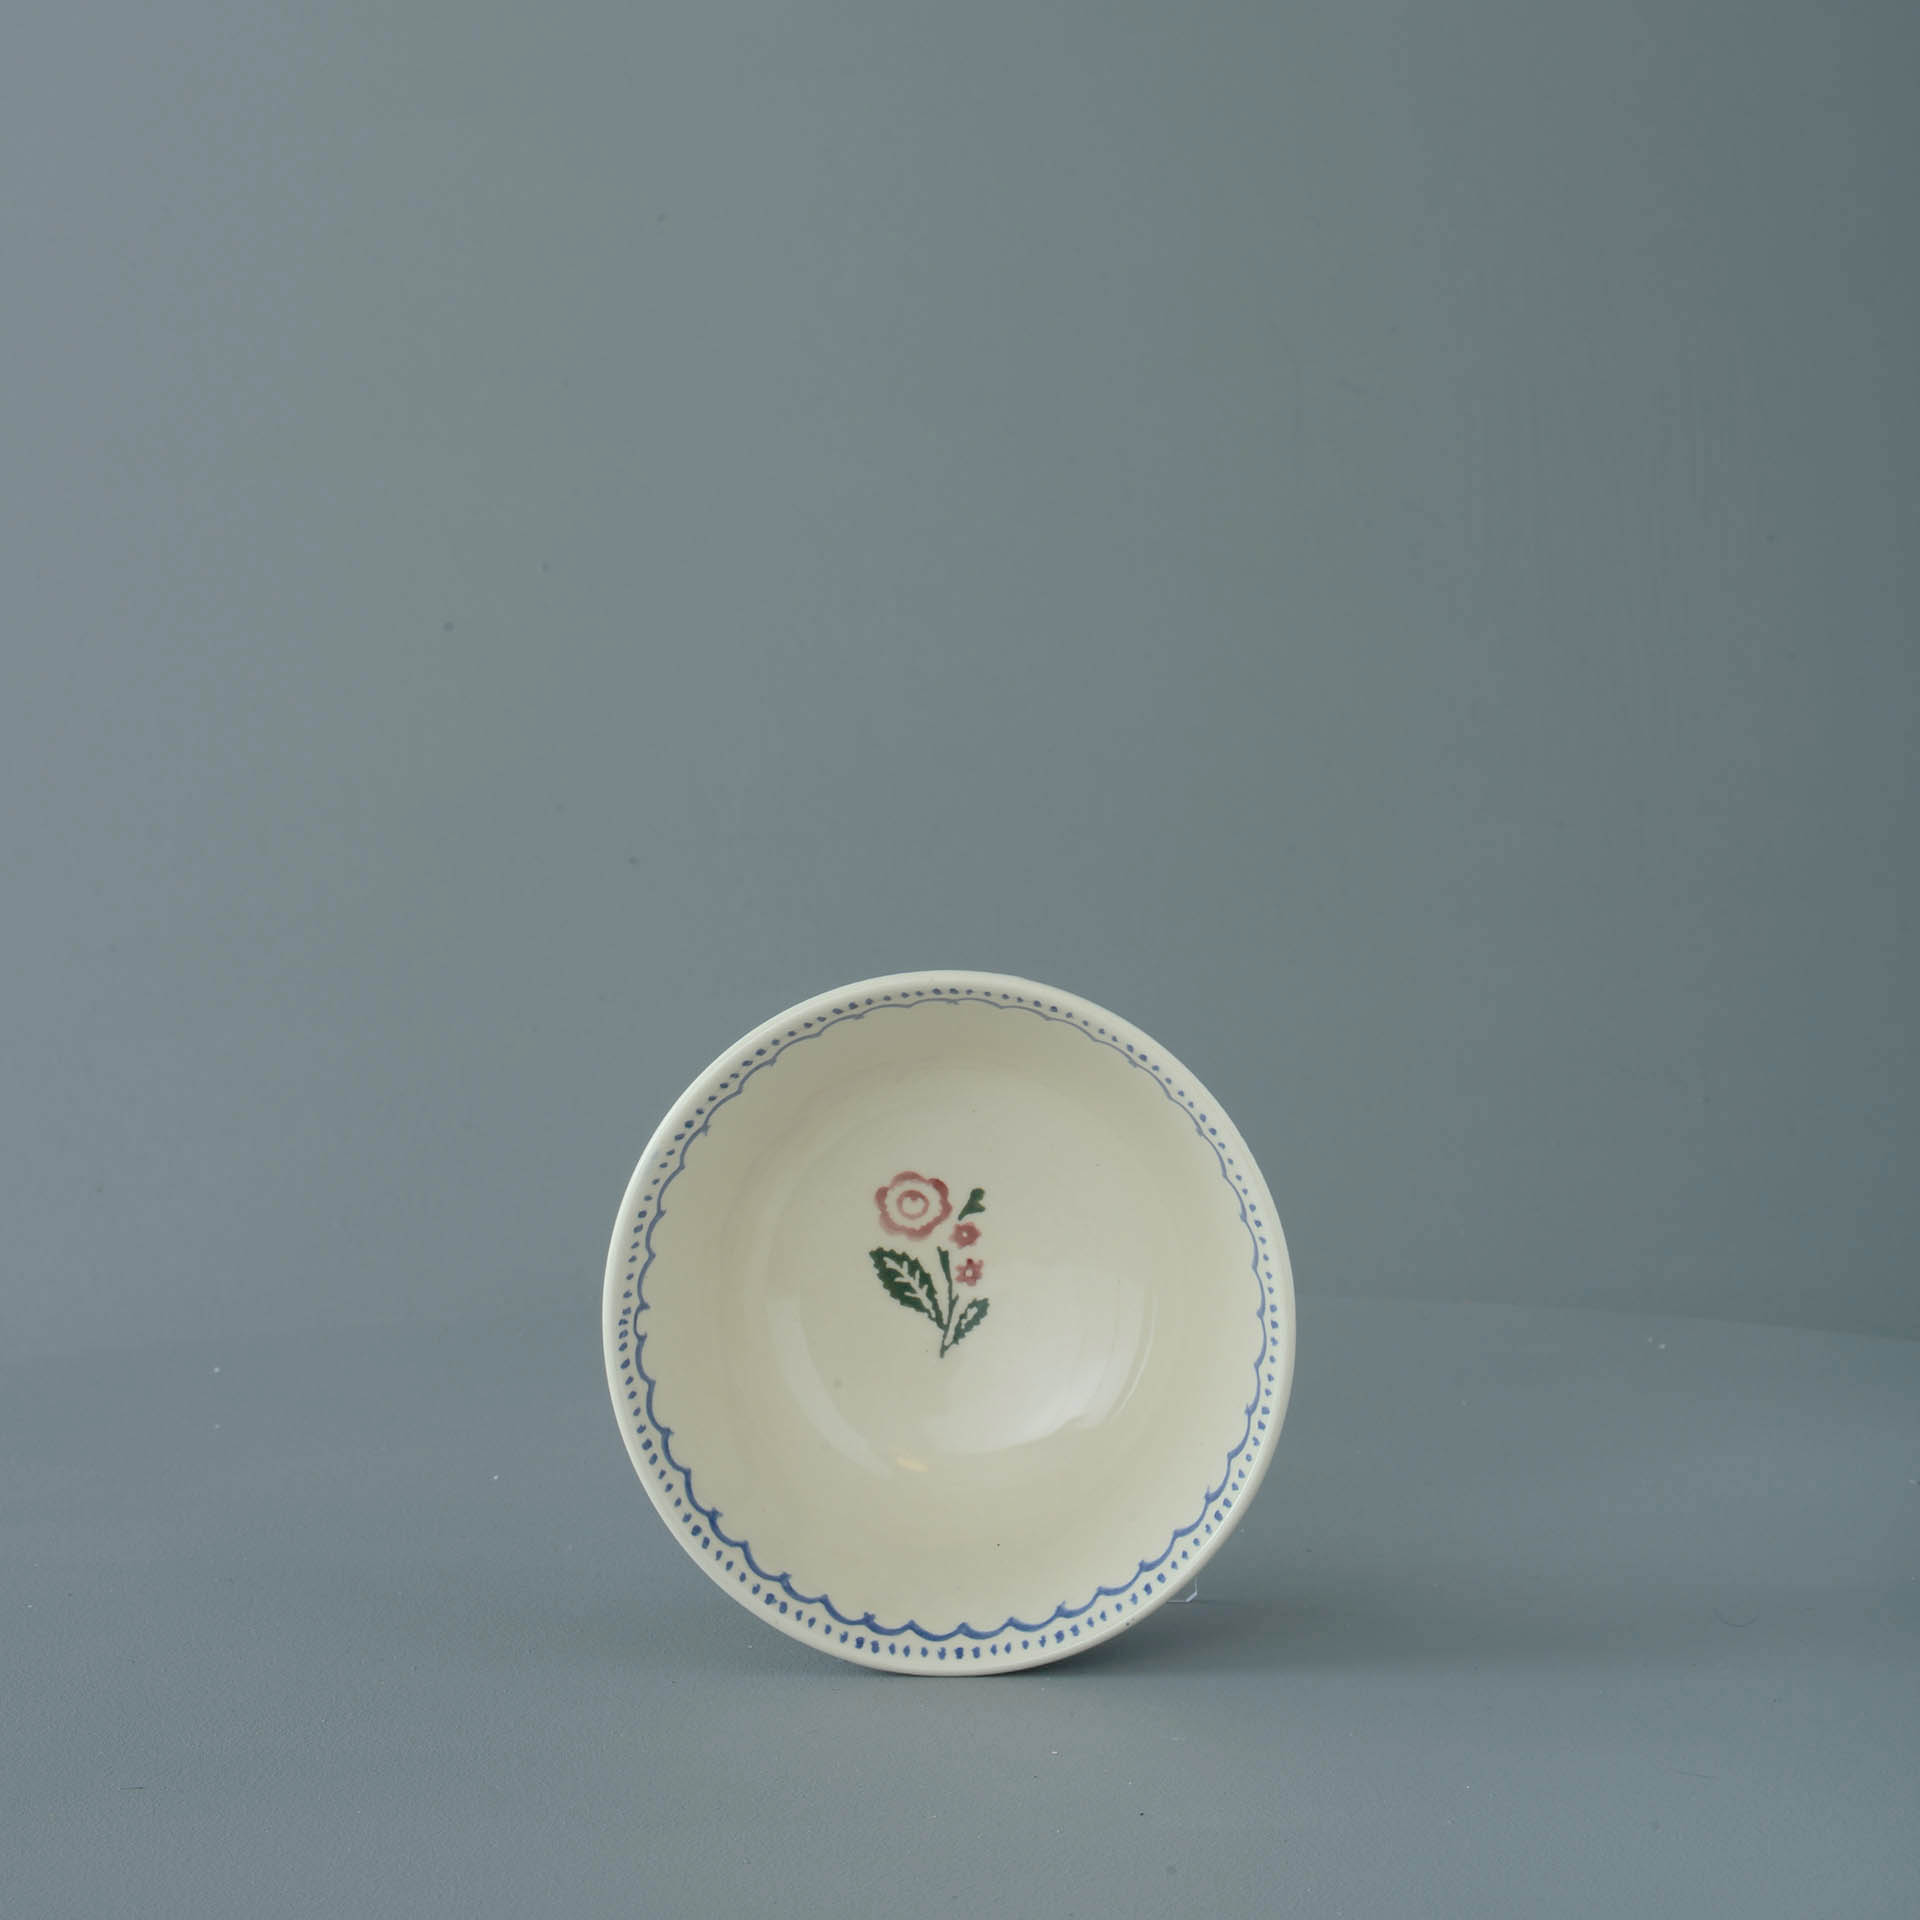 Creeping Briar Small Bowl 6.5 x 12 cm